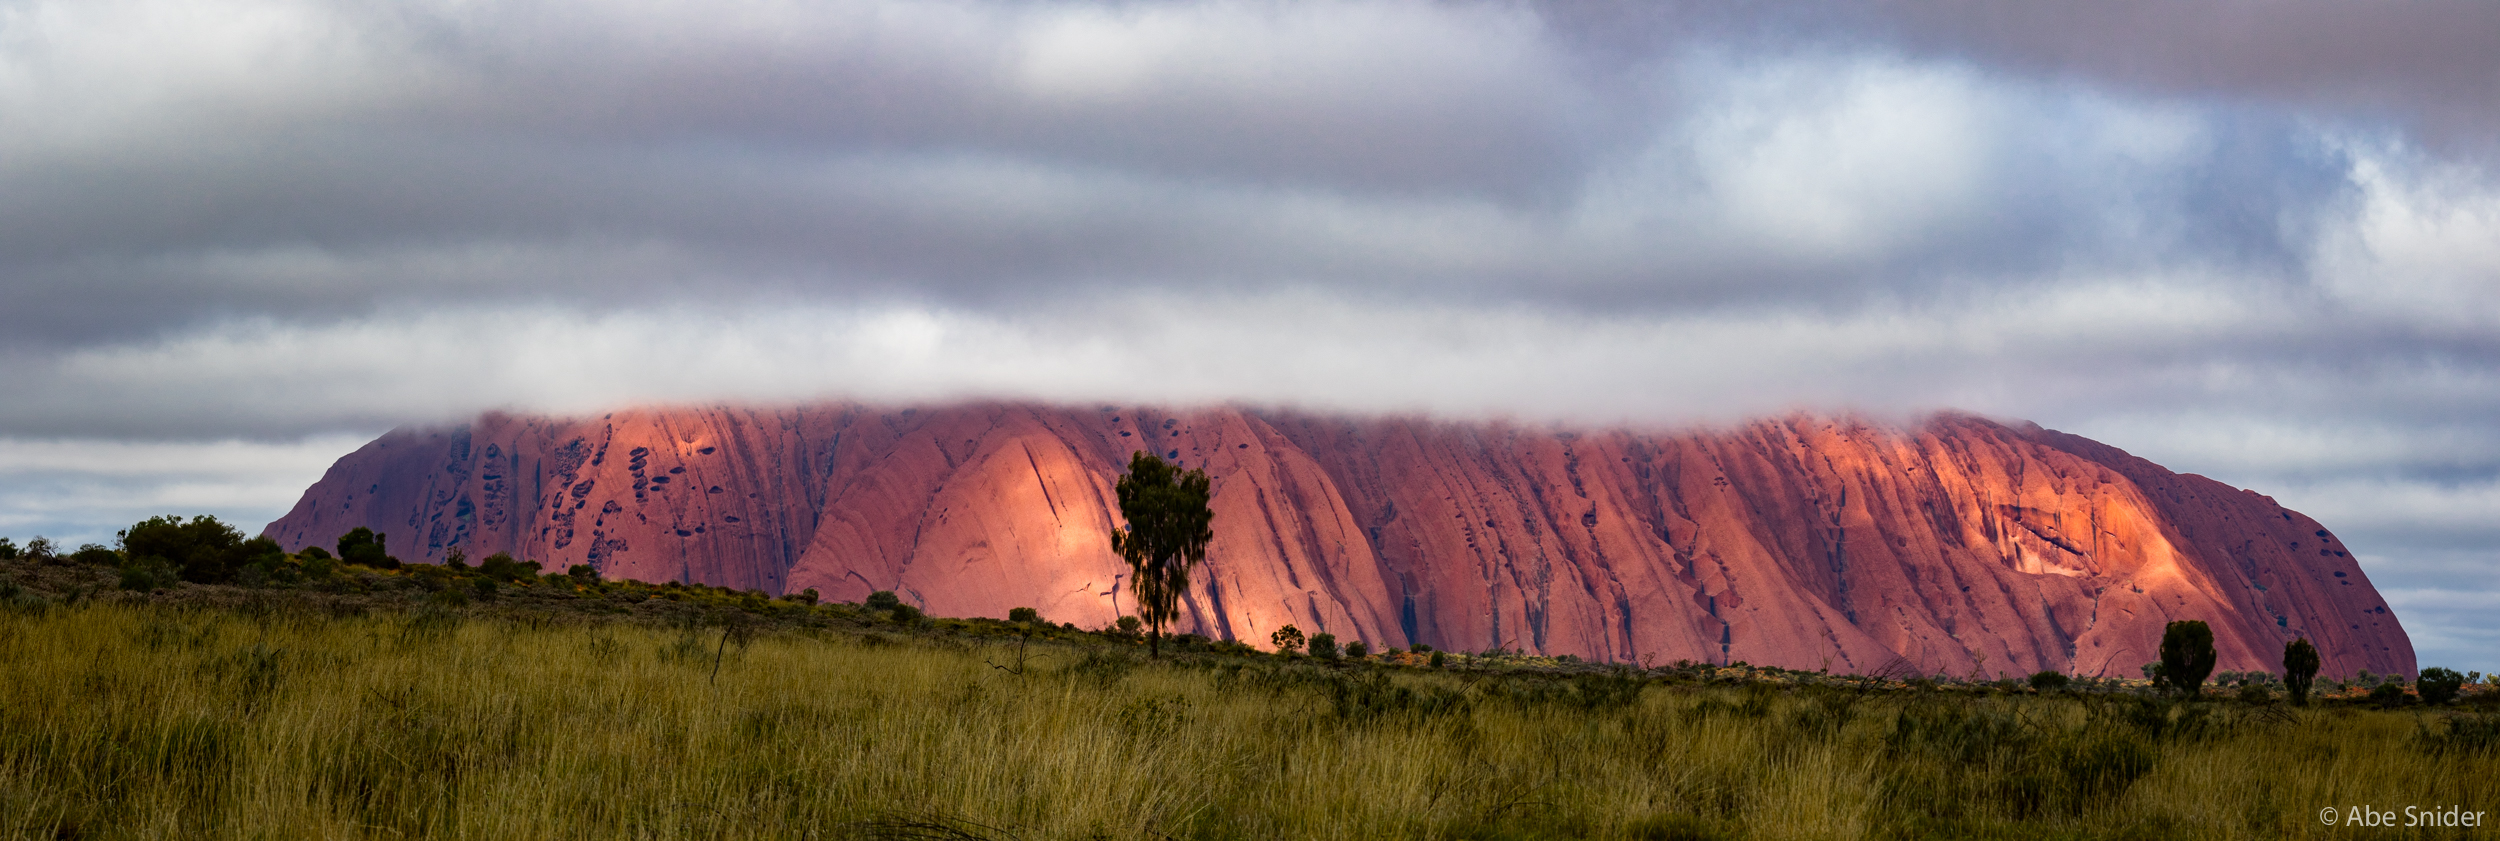 This was how Uluru looked upon our arrival. It was a few days until we had better weather but it was great having cooler temperatures even in winter.